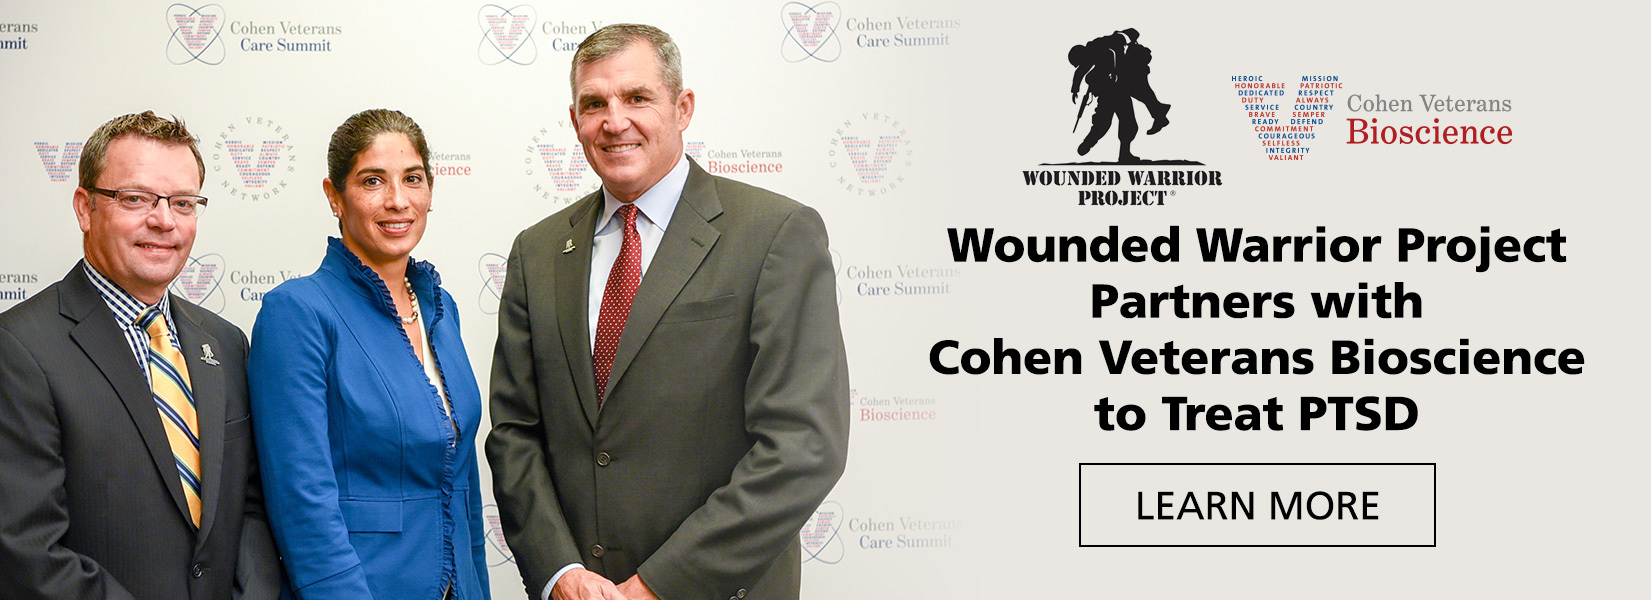 Wounded Warrior Project Partners with Cohen Veterans Bioscience to Treat PTSD